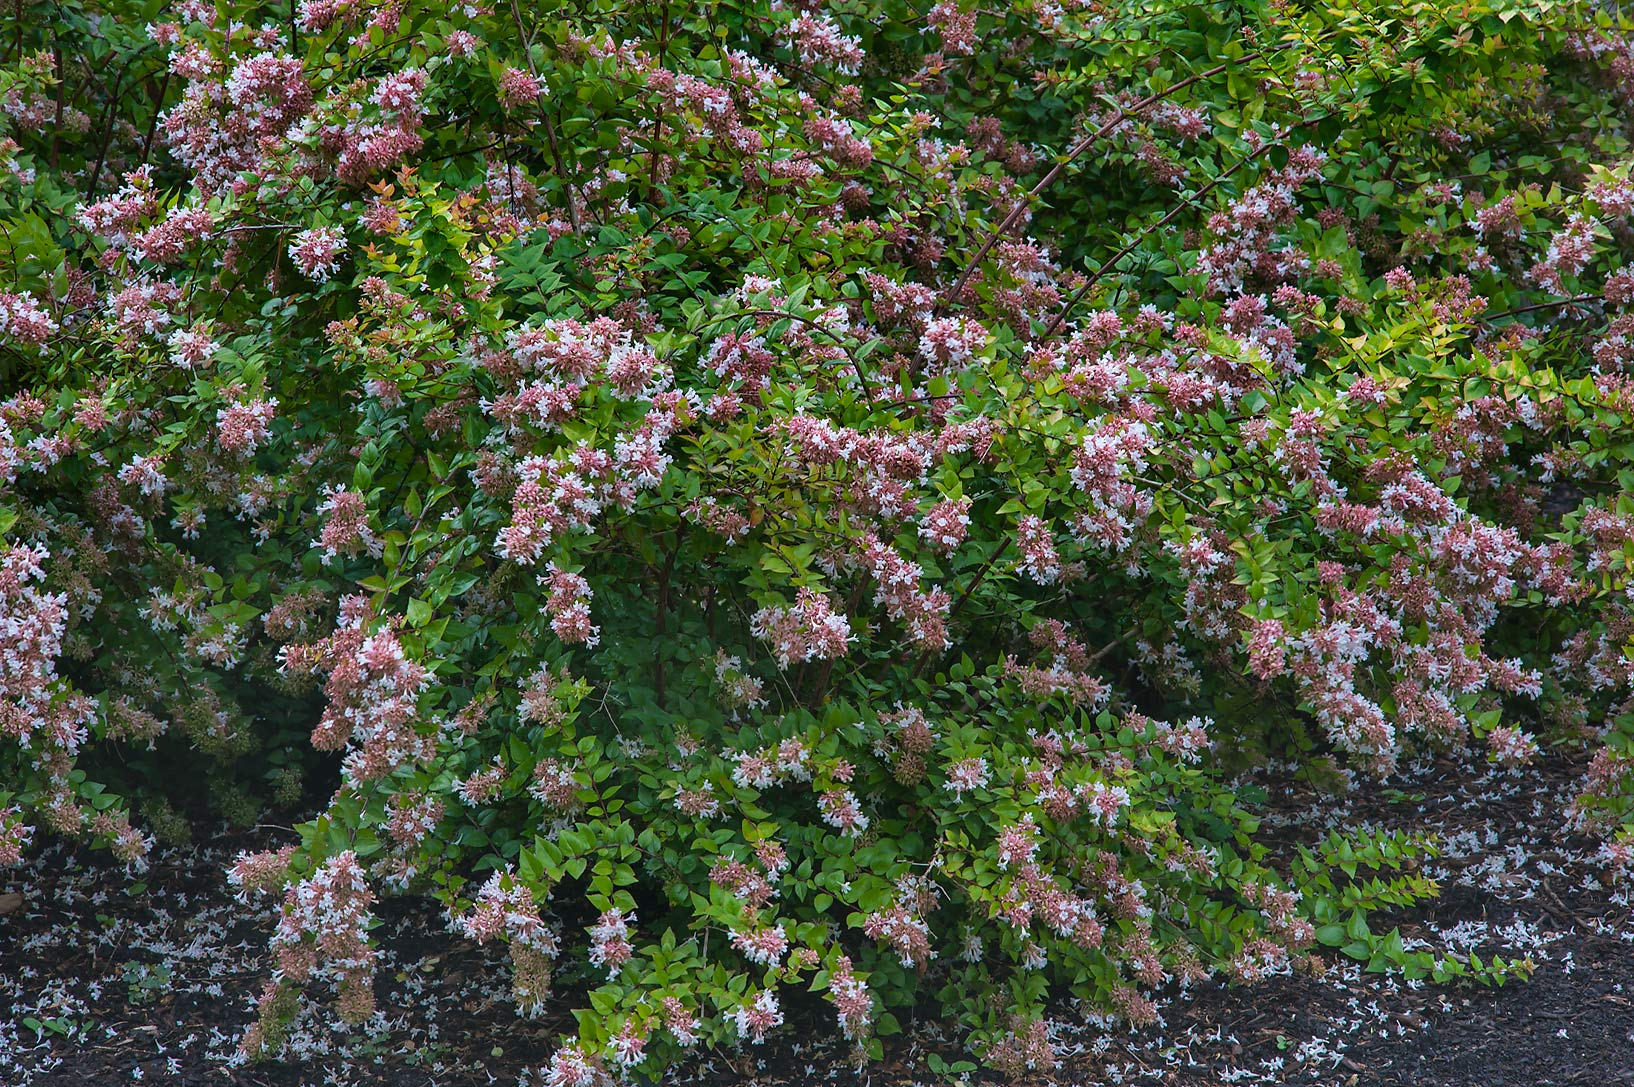 Blooming abelia in Mercer Arboretum and Botanical Gardens. Humble (Houston area), Texas